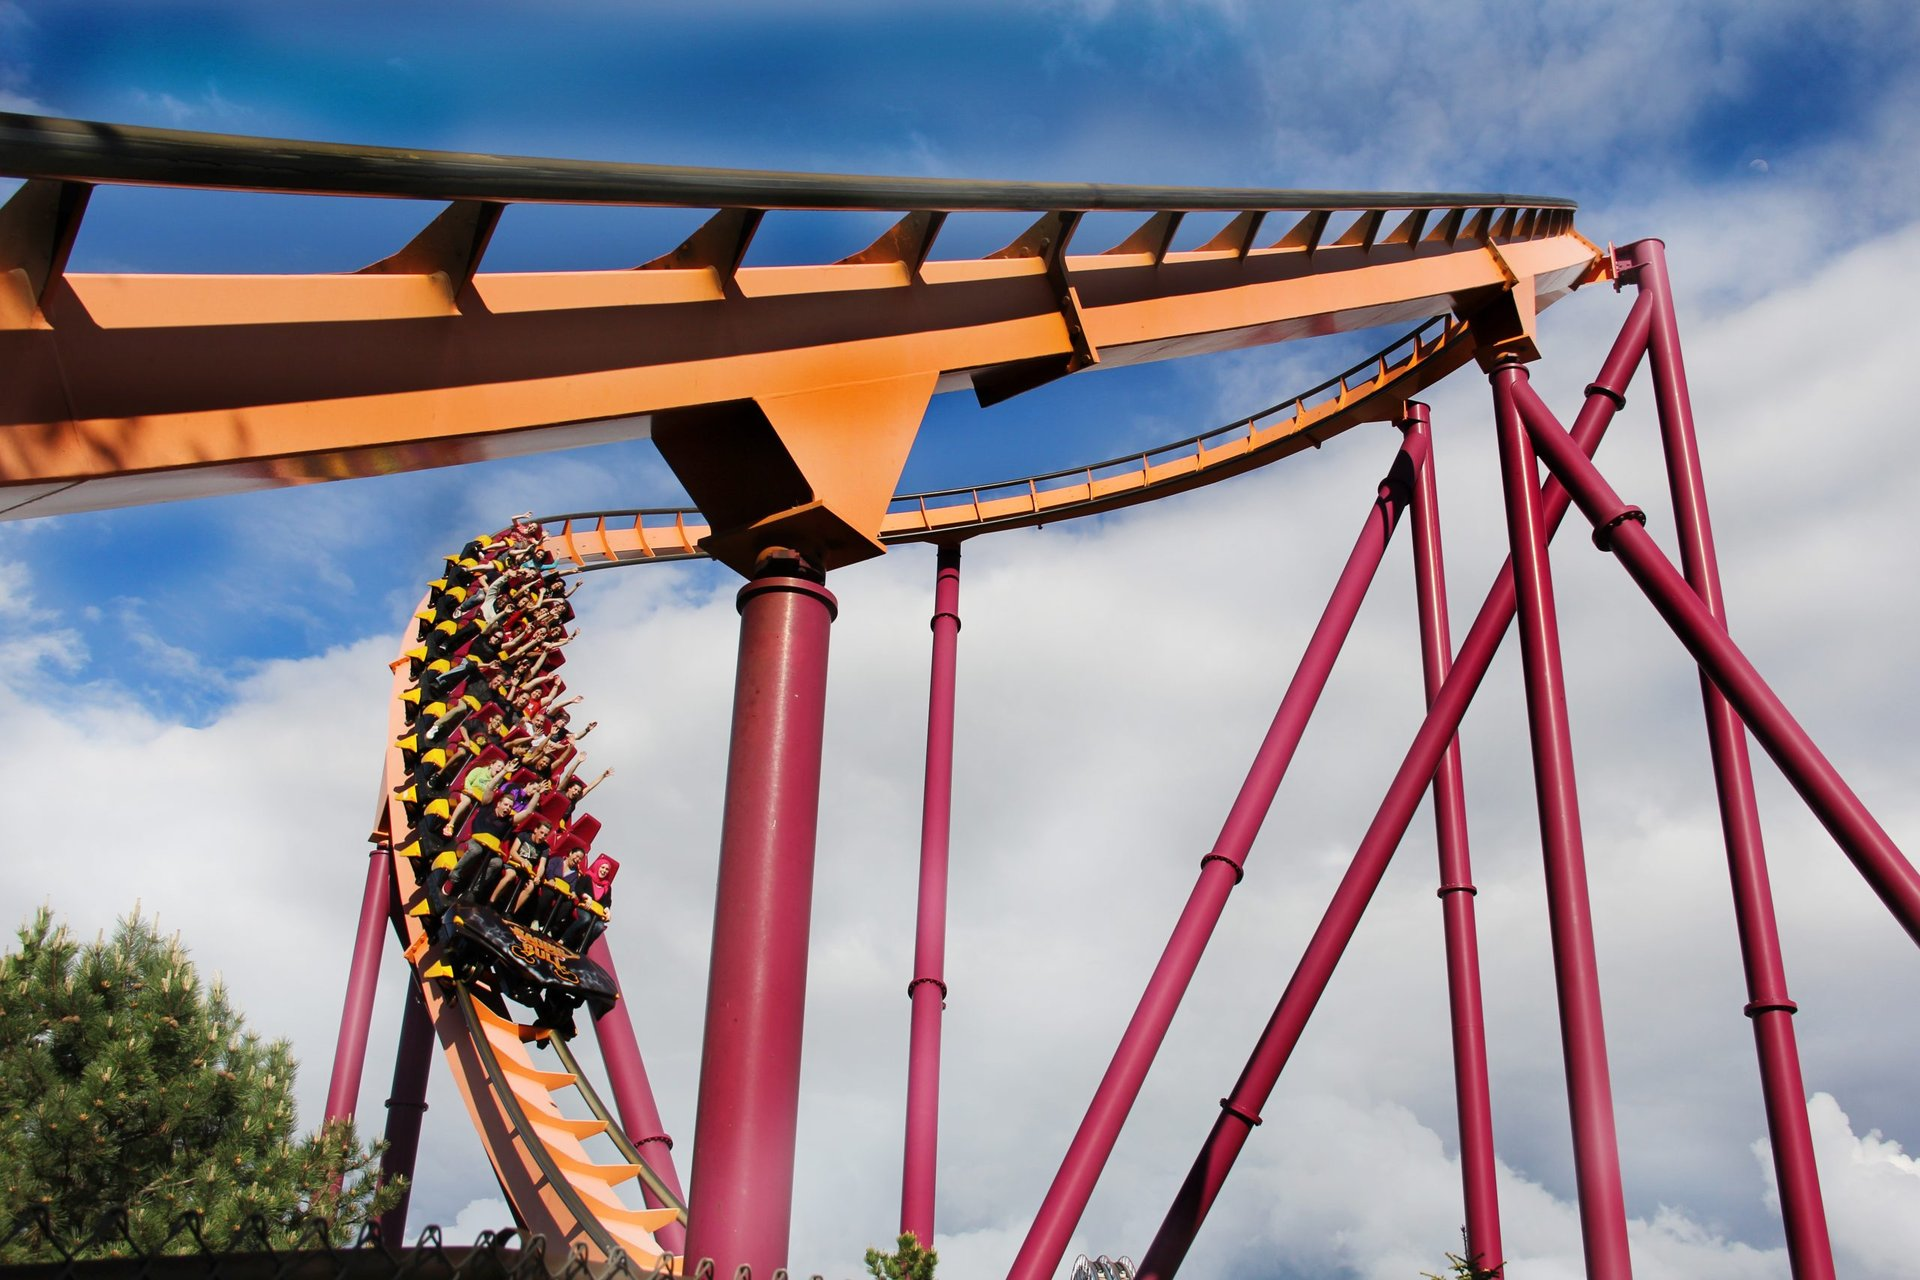 raging bull with riders coming out of a turn at Six Flags